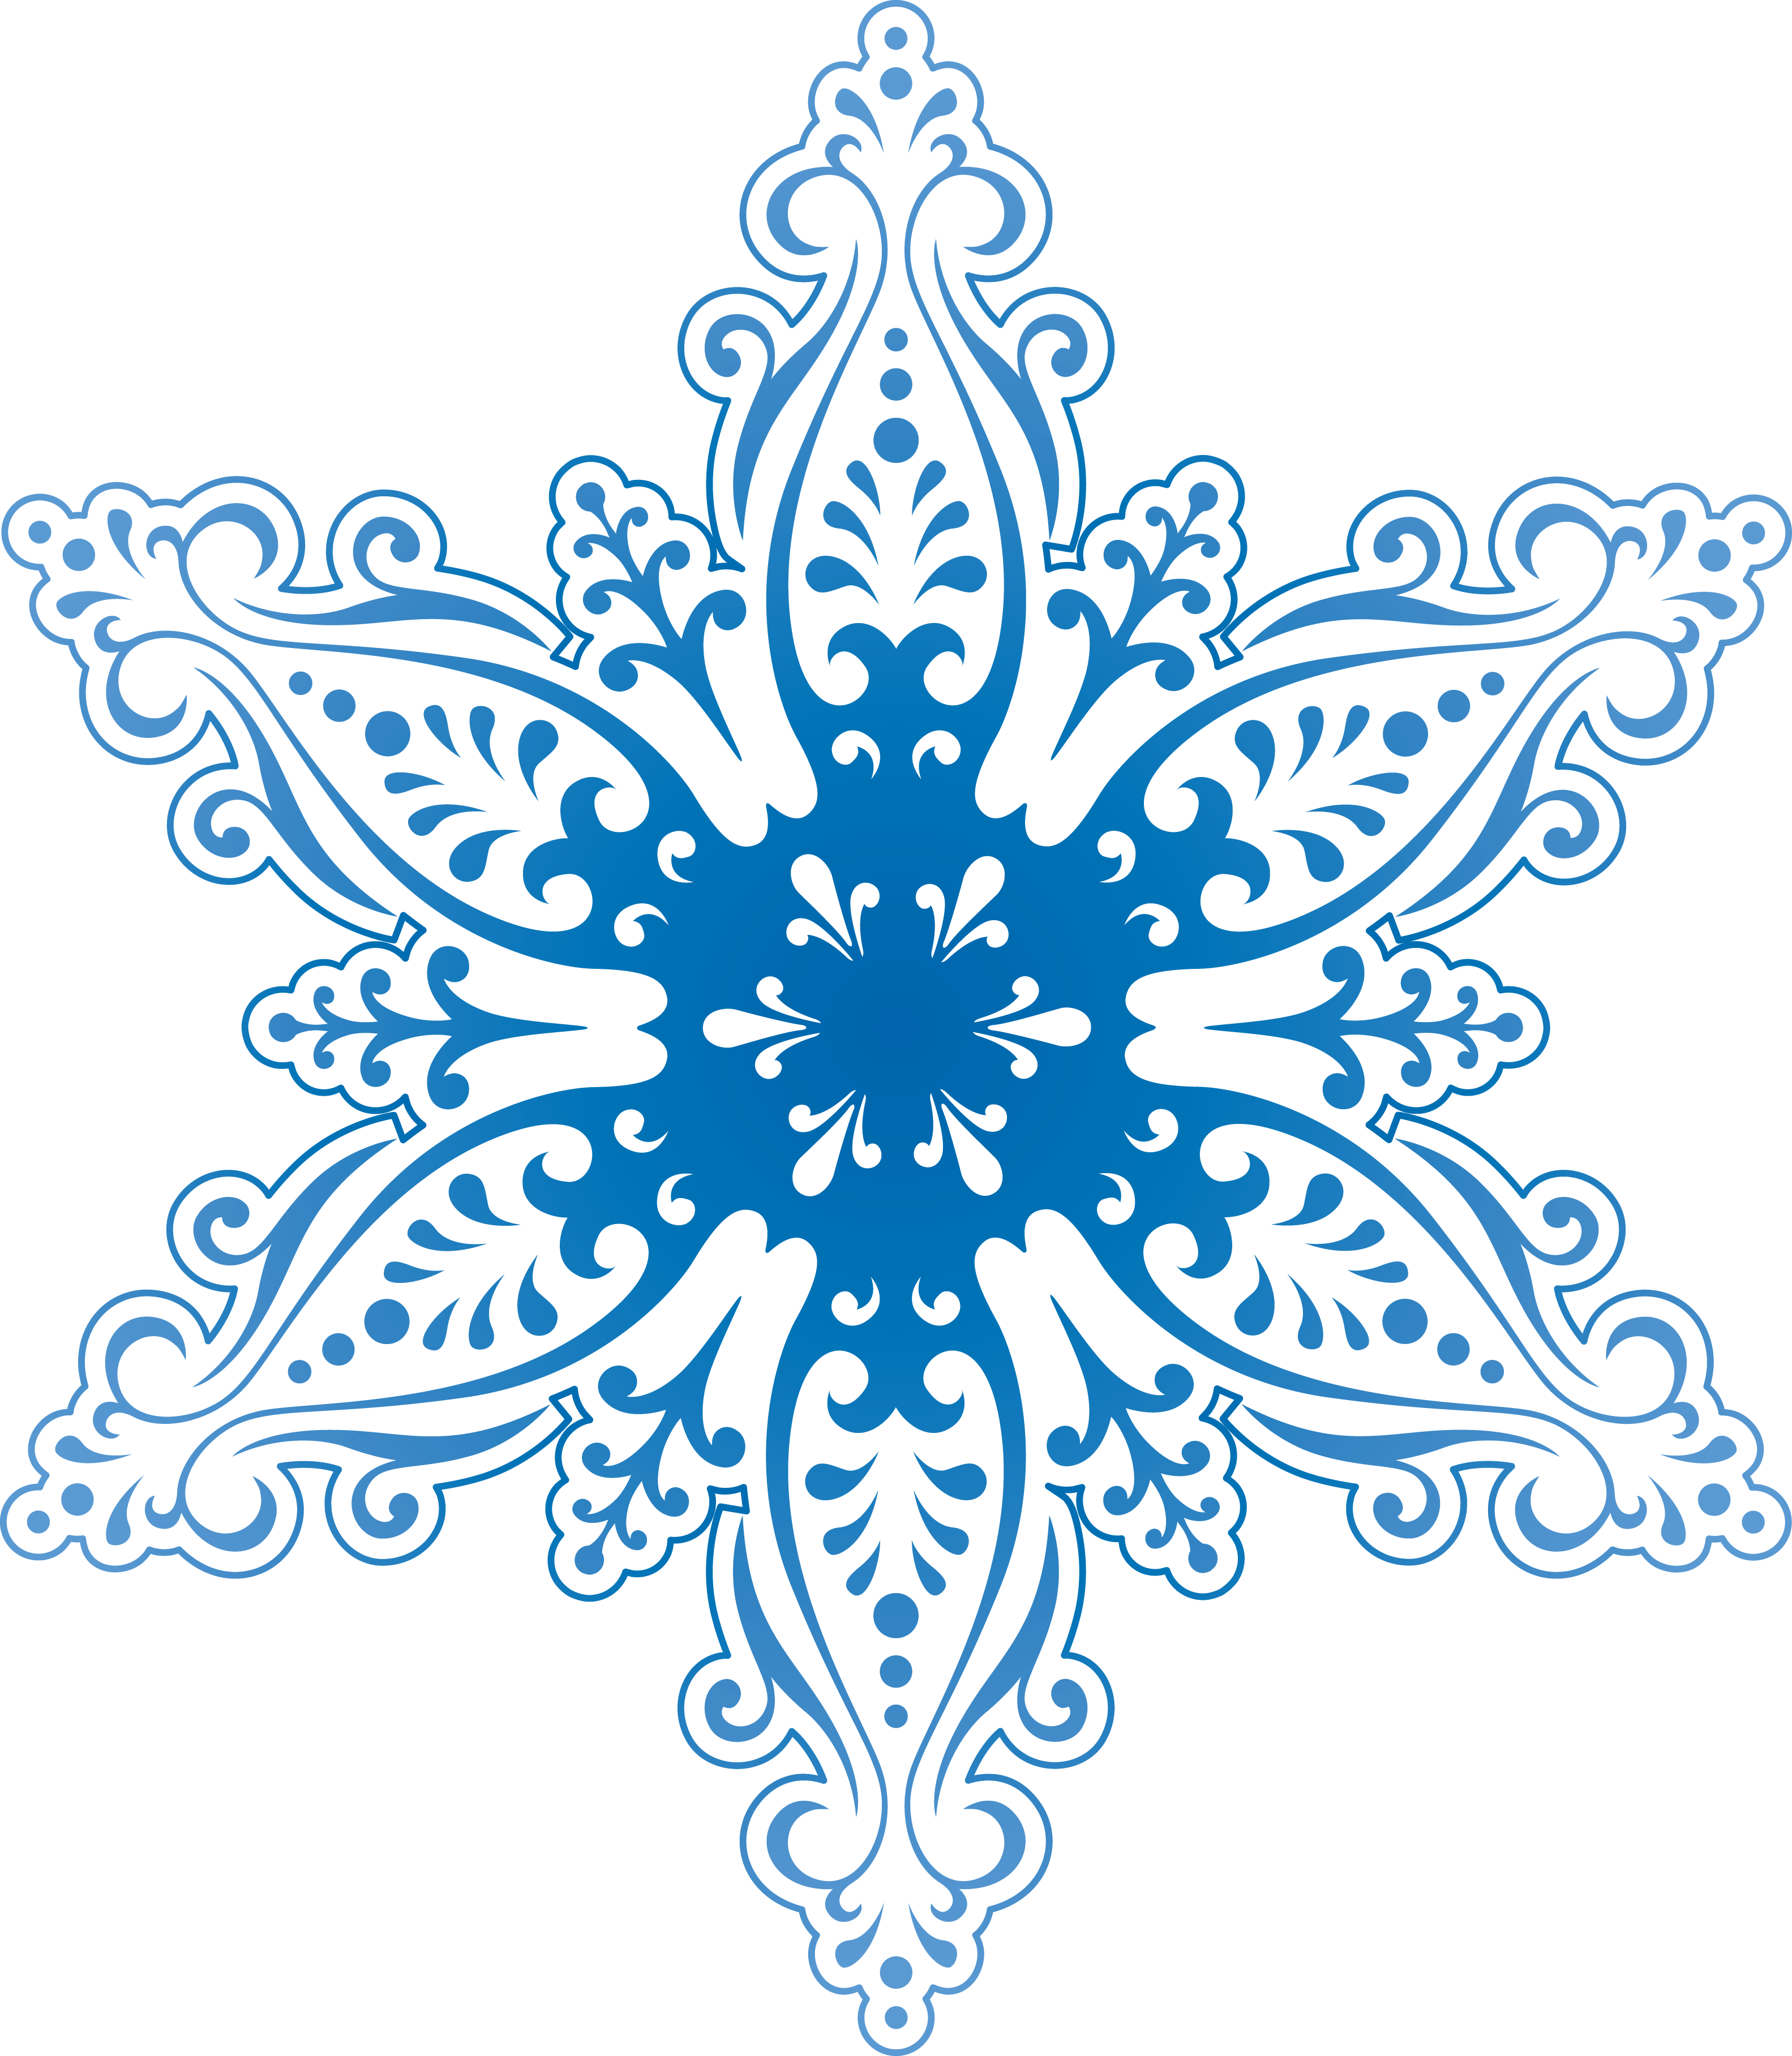 Http Pngimg Com Upload Snowflakes Png7549 Png Christmas Snowflakes Snowflakes Christmas Prints